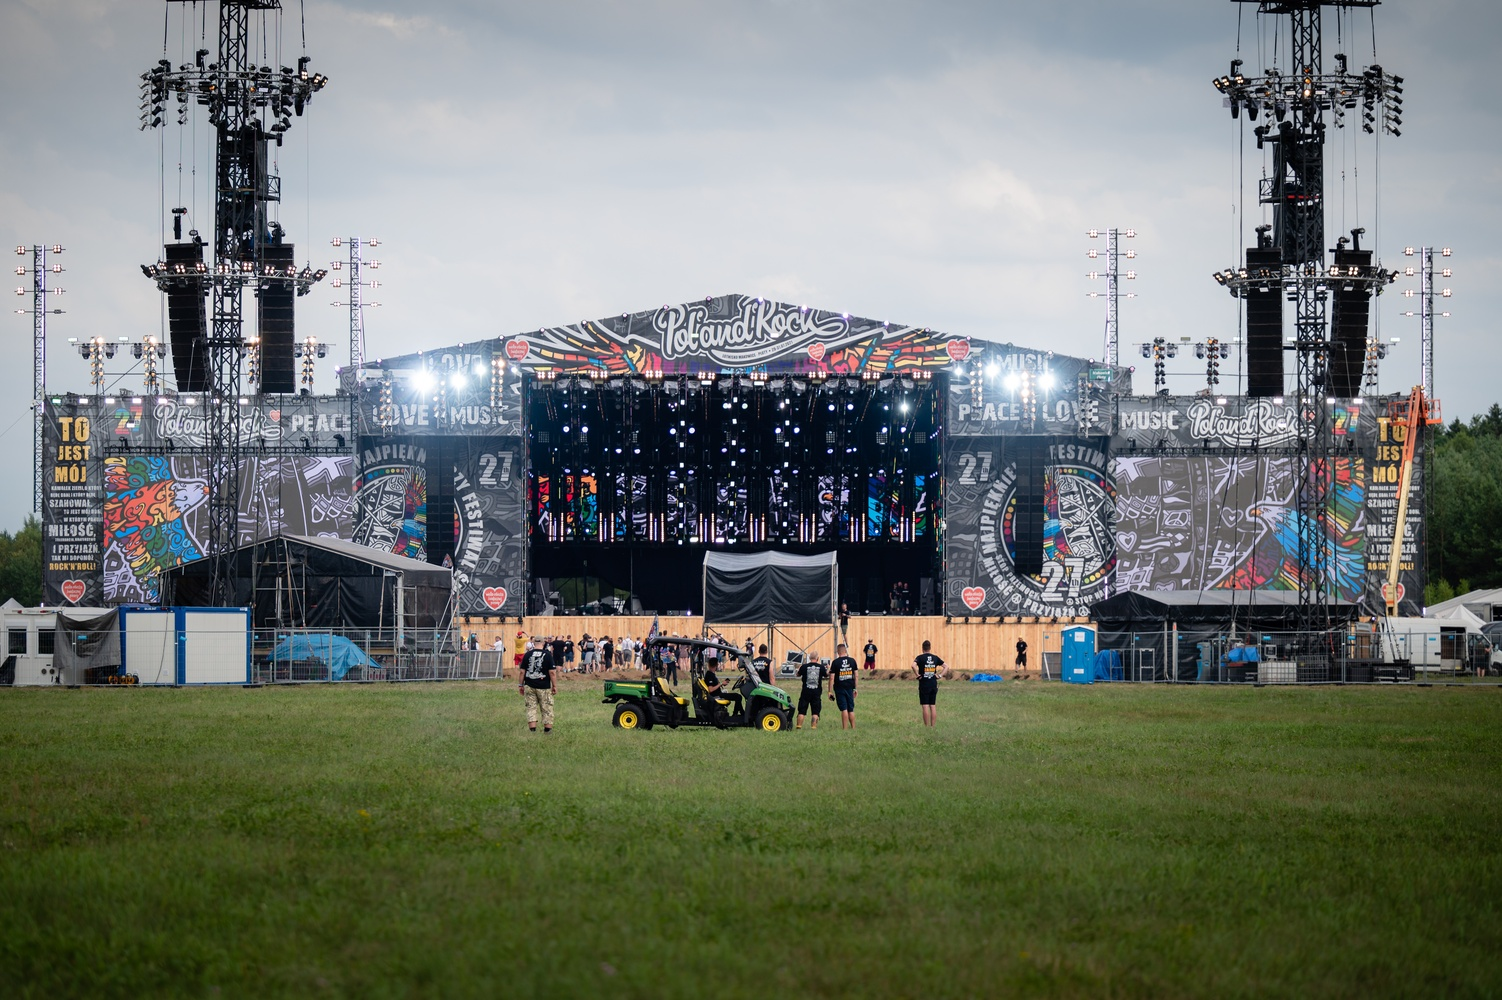 This year's stage of the Most Beautiful Festival of the World, Photographer Marcin Michoń